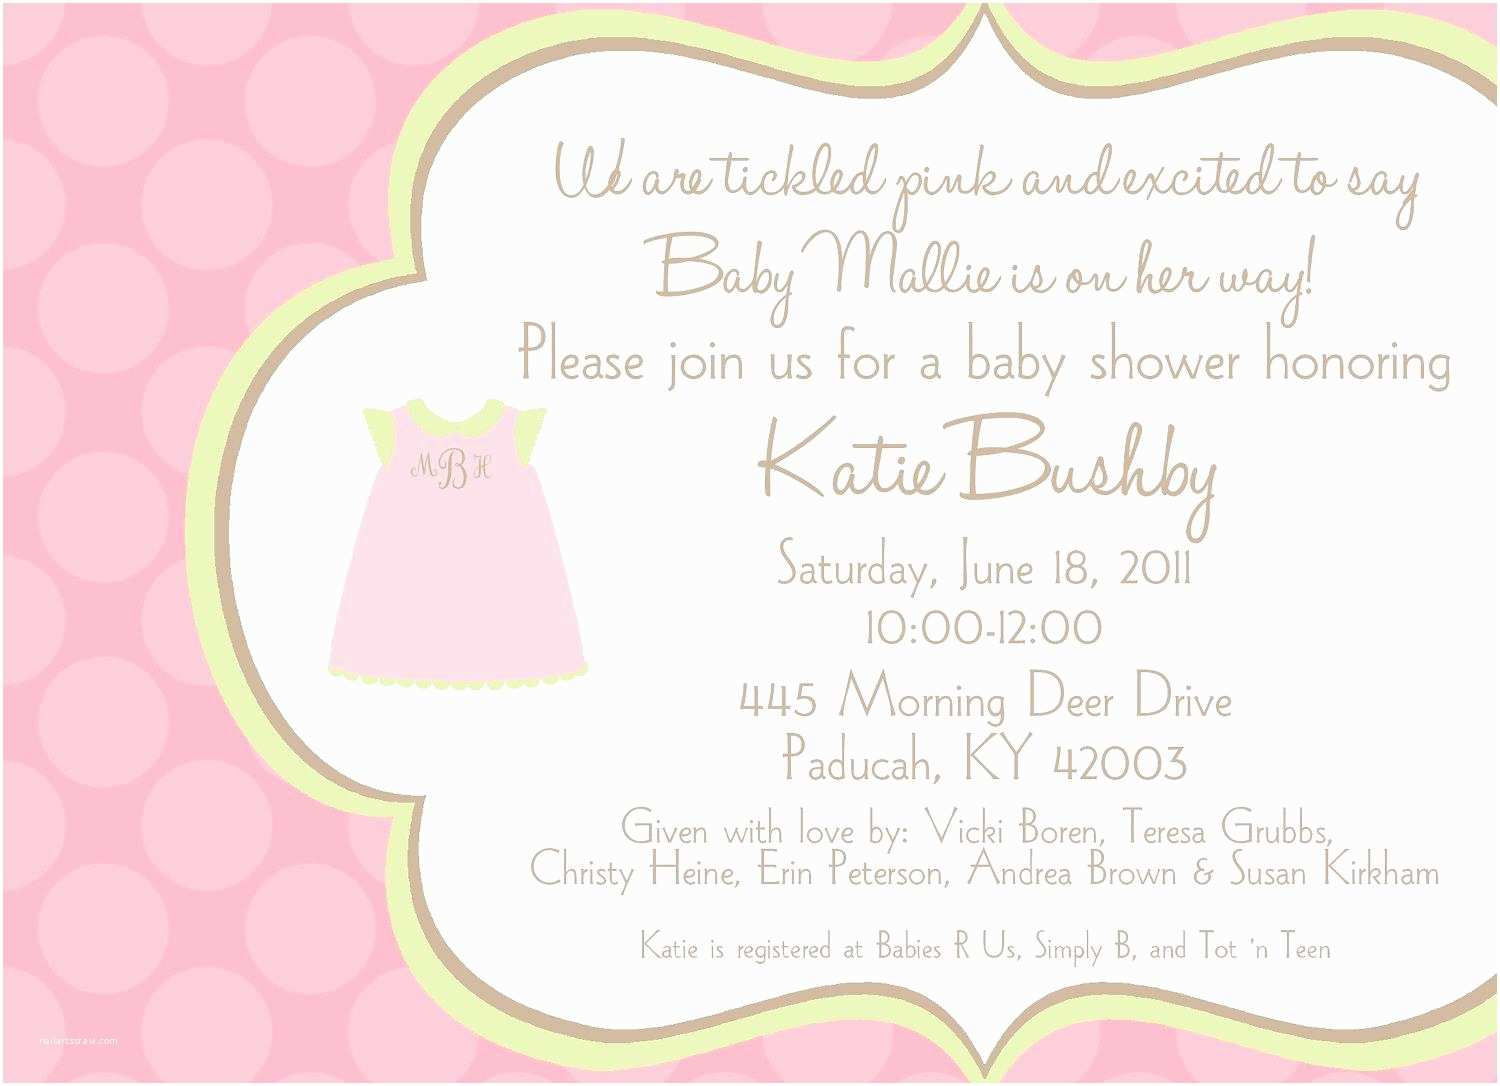 Baby Shower Invitation Wording For A Boy Baby Shower Invitation Wording For A